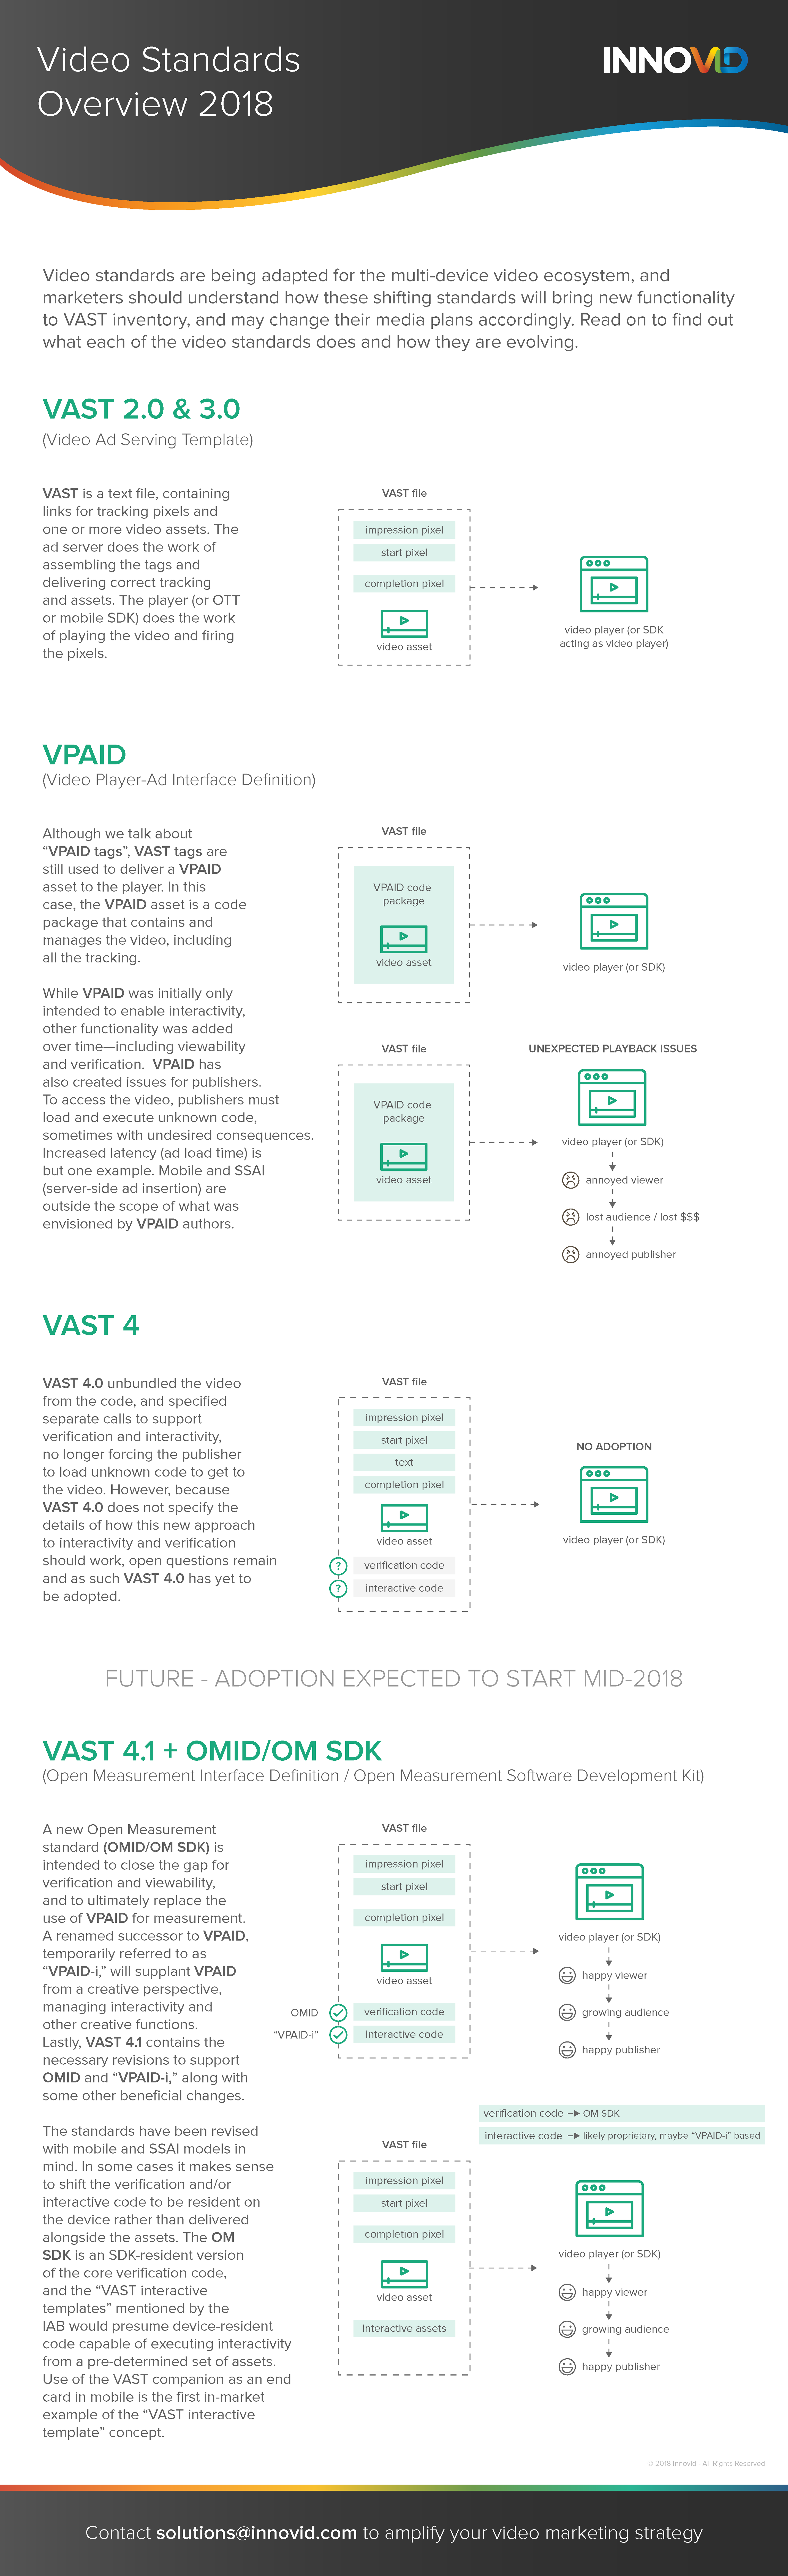 [Infographic] 2018 Video Standards Overview